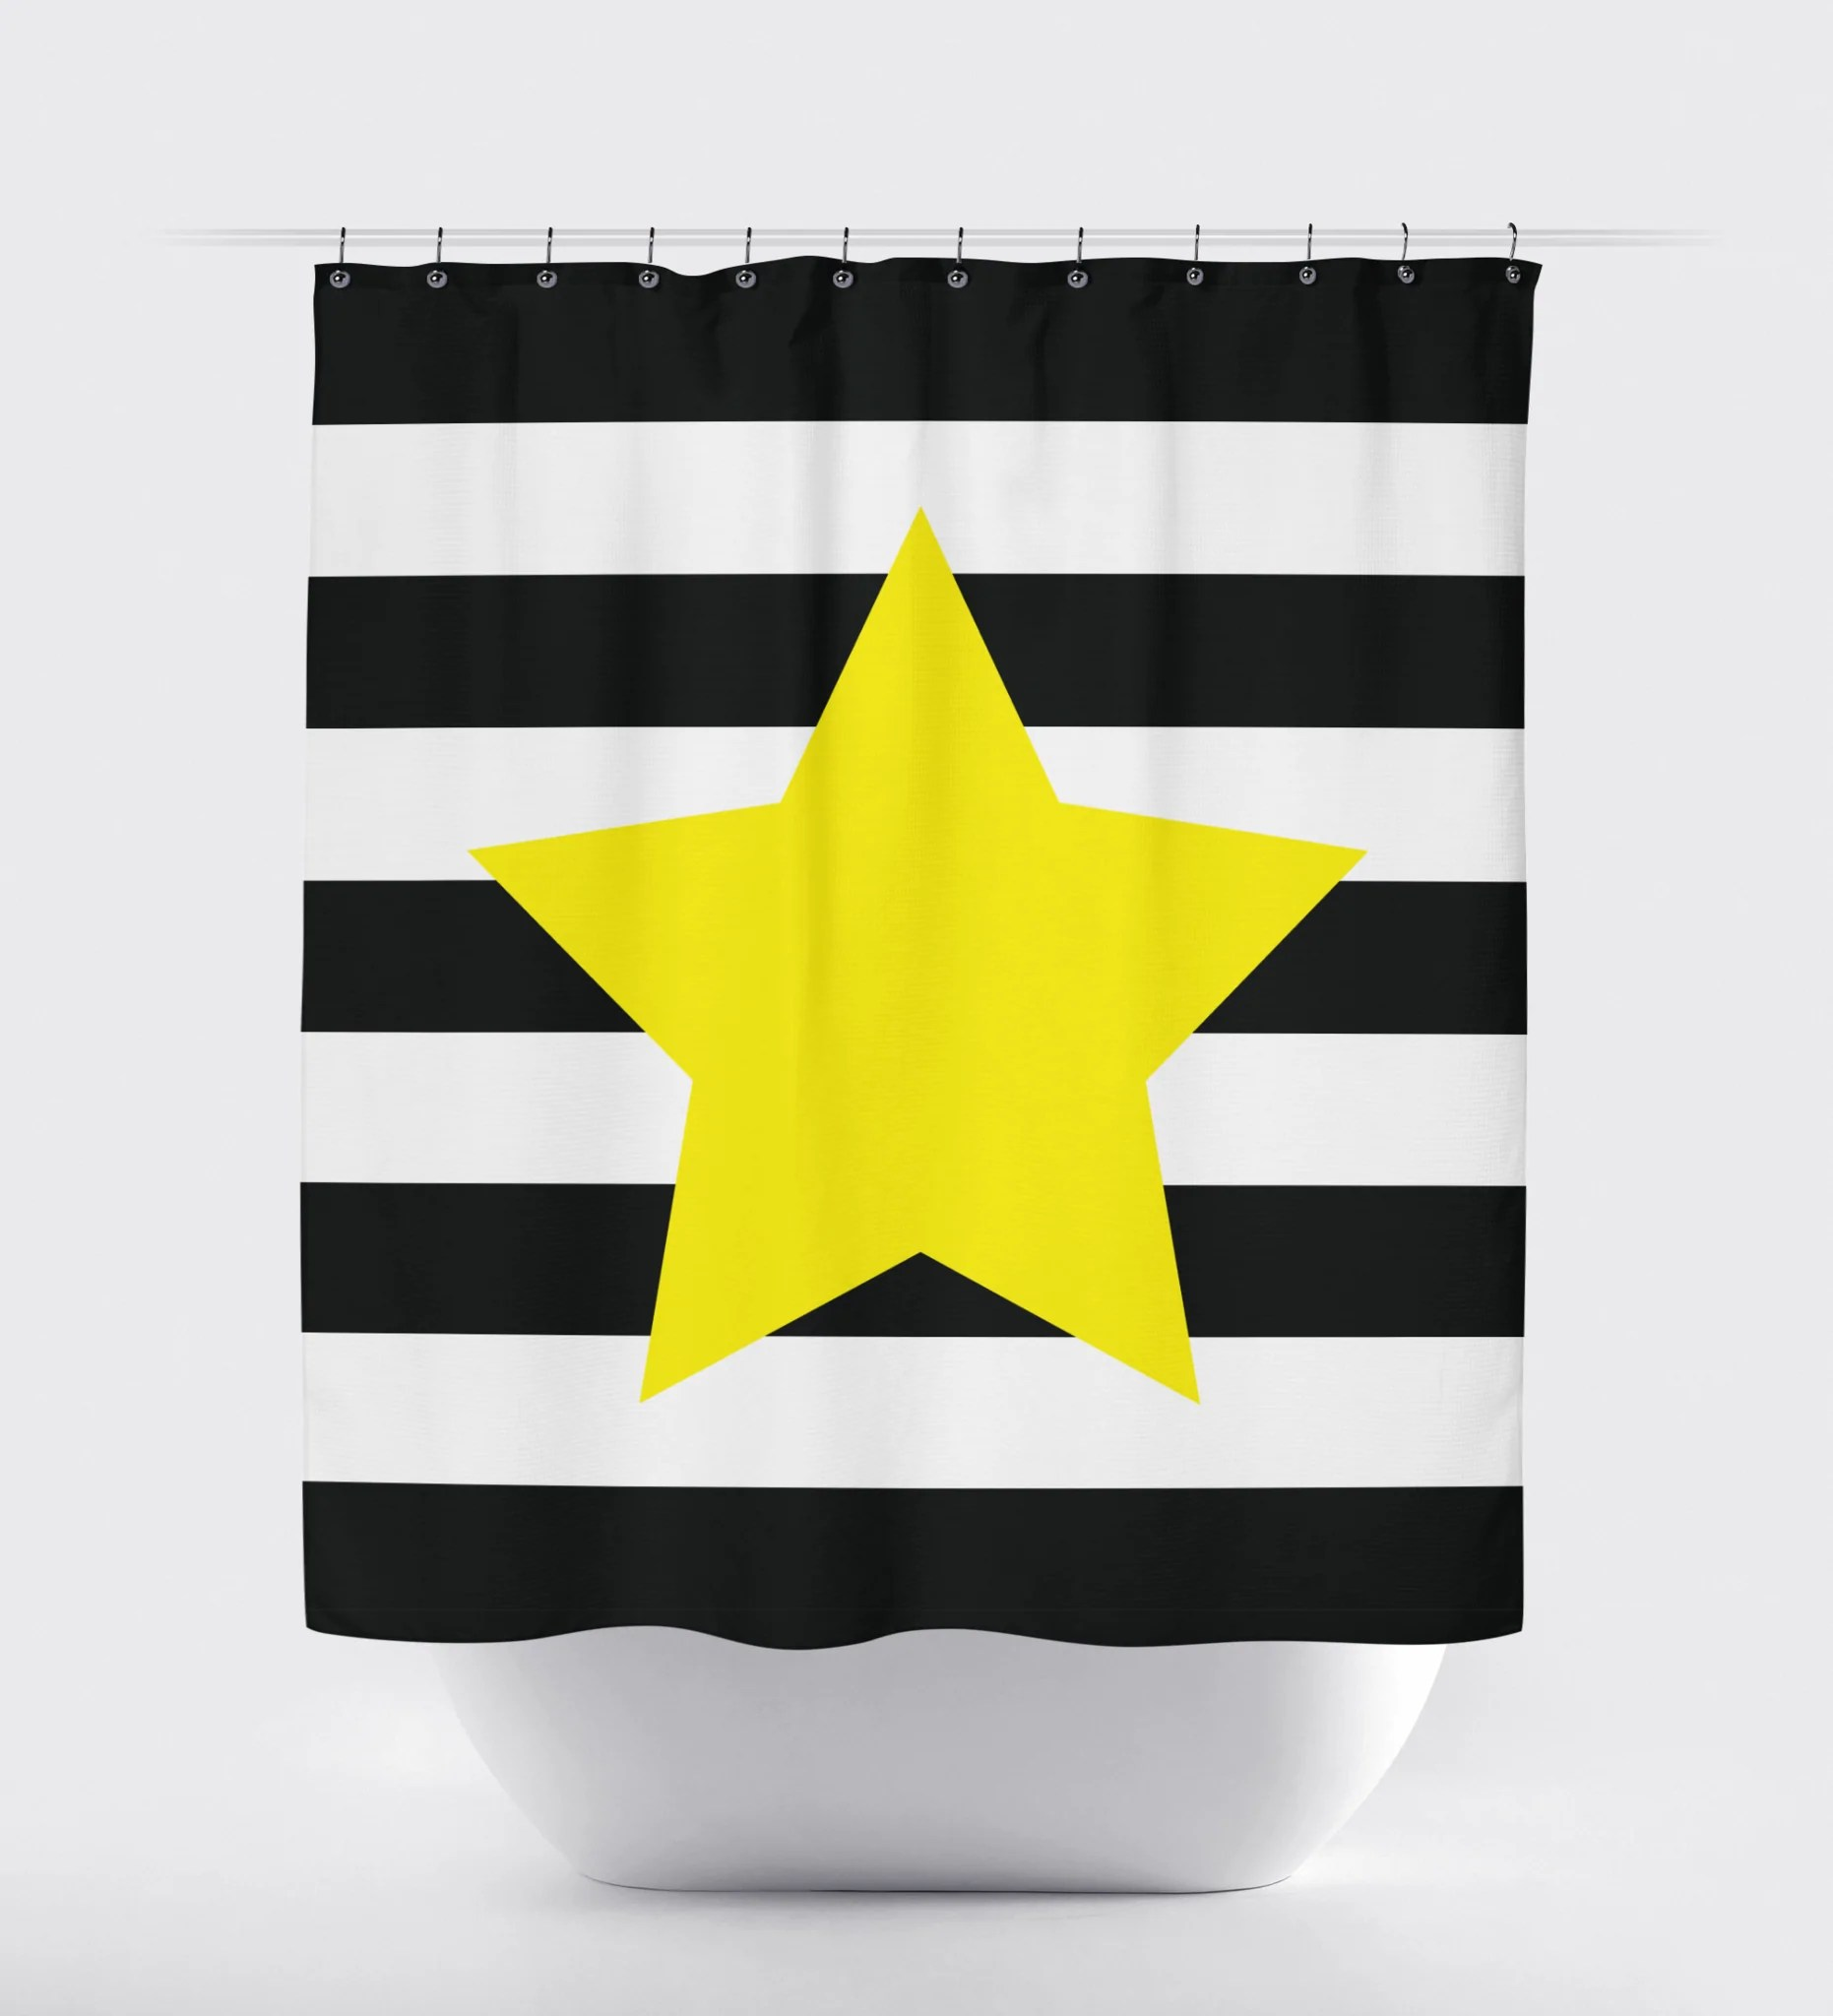 82 Shower Curtain Star Shower Curtain With Rugby Stripes Amethyst Pool White Choose Any Colors